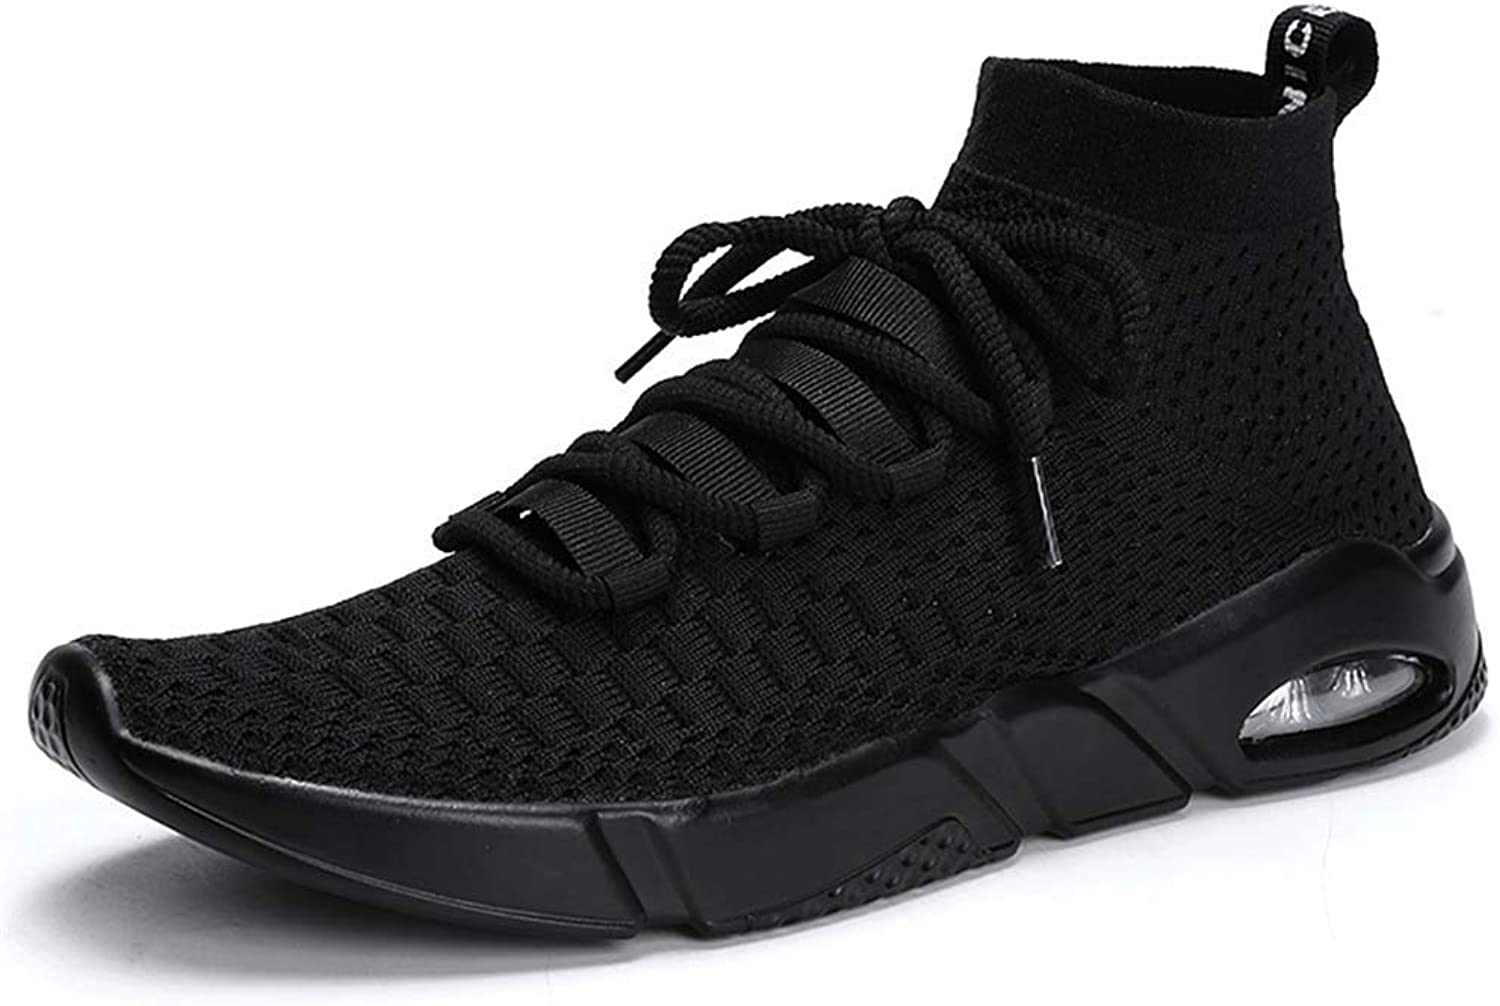 ZHRUI Mens Sneakers Casual shoes Running shoes High Top Knit Breathable Slip On Lightweight Socks shoes Mens (color   Black, Size   12=46 EU)